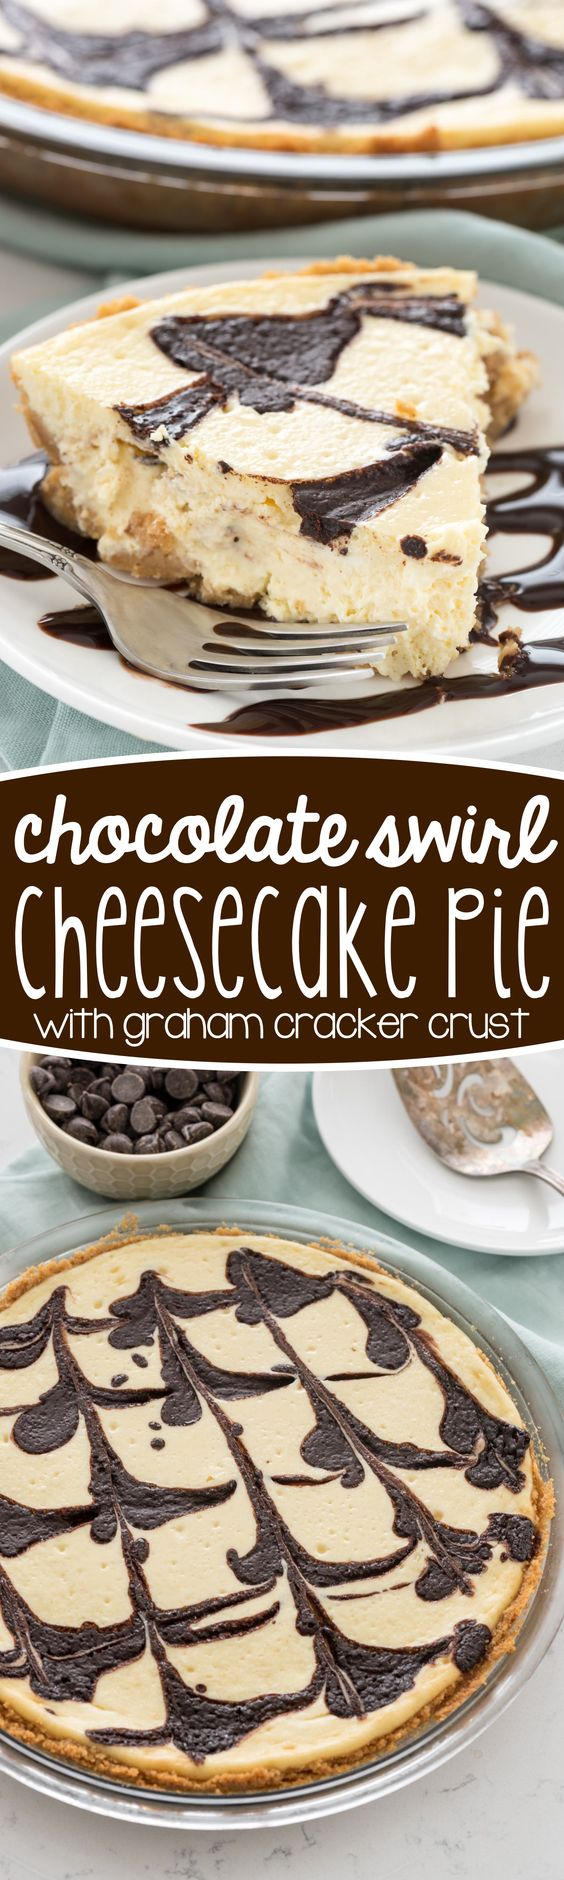 Chocolate Swirl Cheesecake Pie Recipe via Crazy for Crust - this baked cheesecake recipe is so easy! No water bath or fussy steps, just a creamy cheesecake swirled with chocolate!